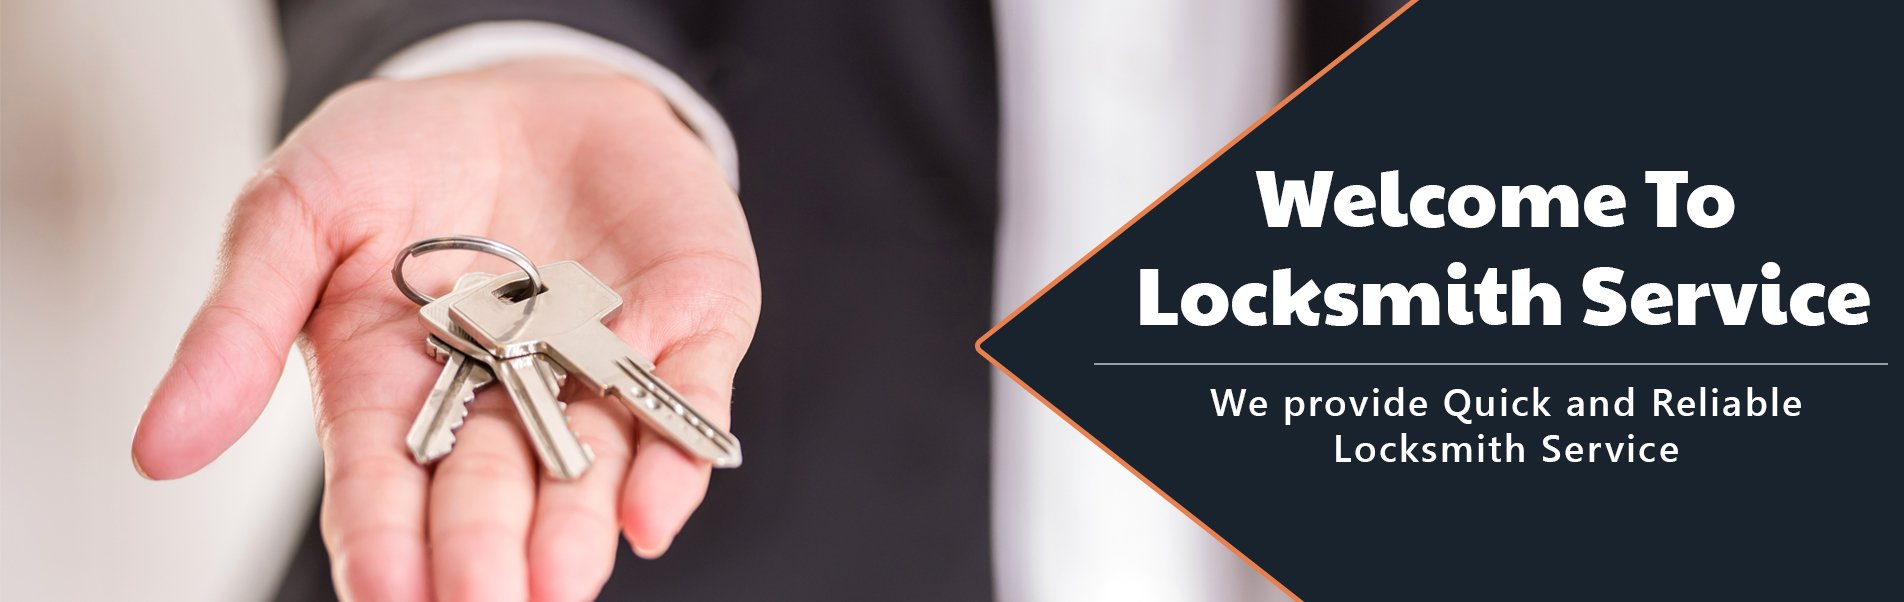 South San Francisco Locksmiths, South San Francisco, CA 650-480-6018